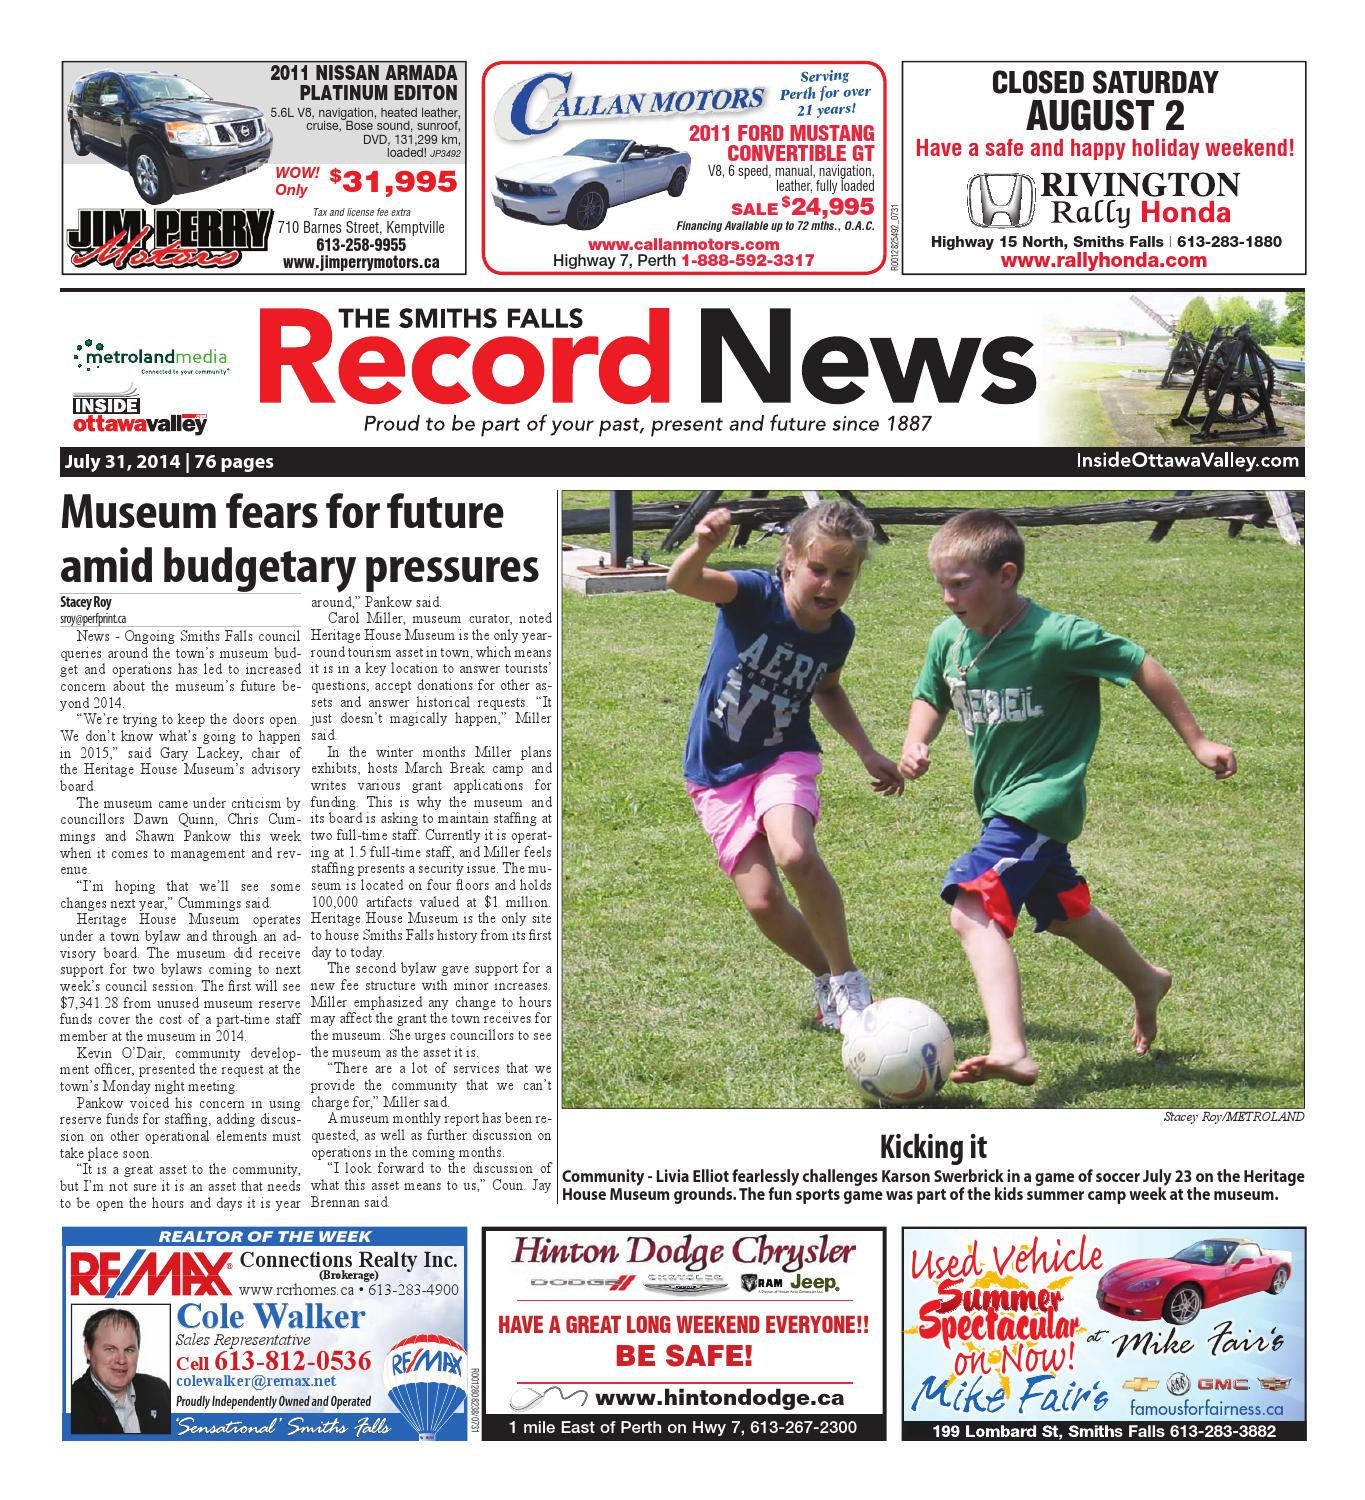 d54bd15c1 Smithsfalls073114 by Metroland East - Smiths Falls Record News - issuu